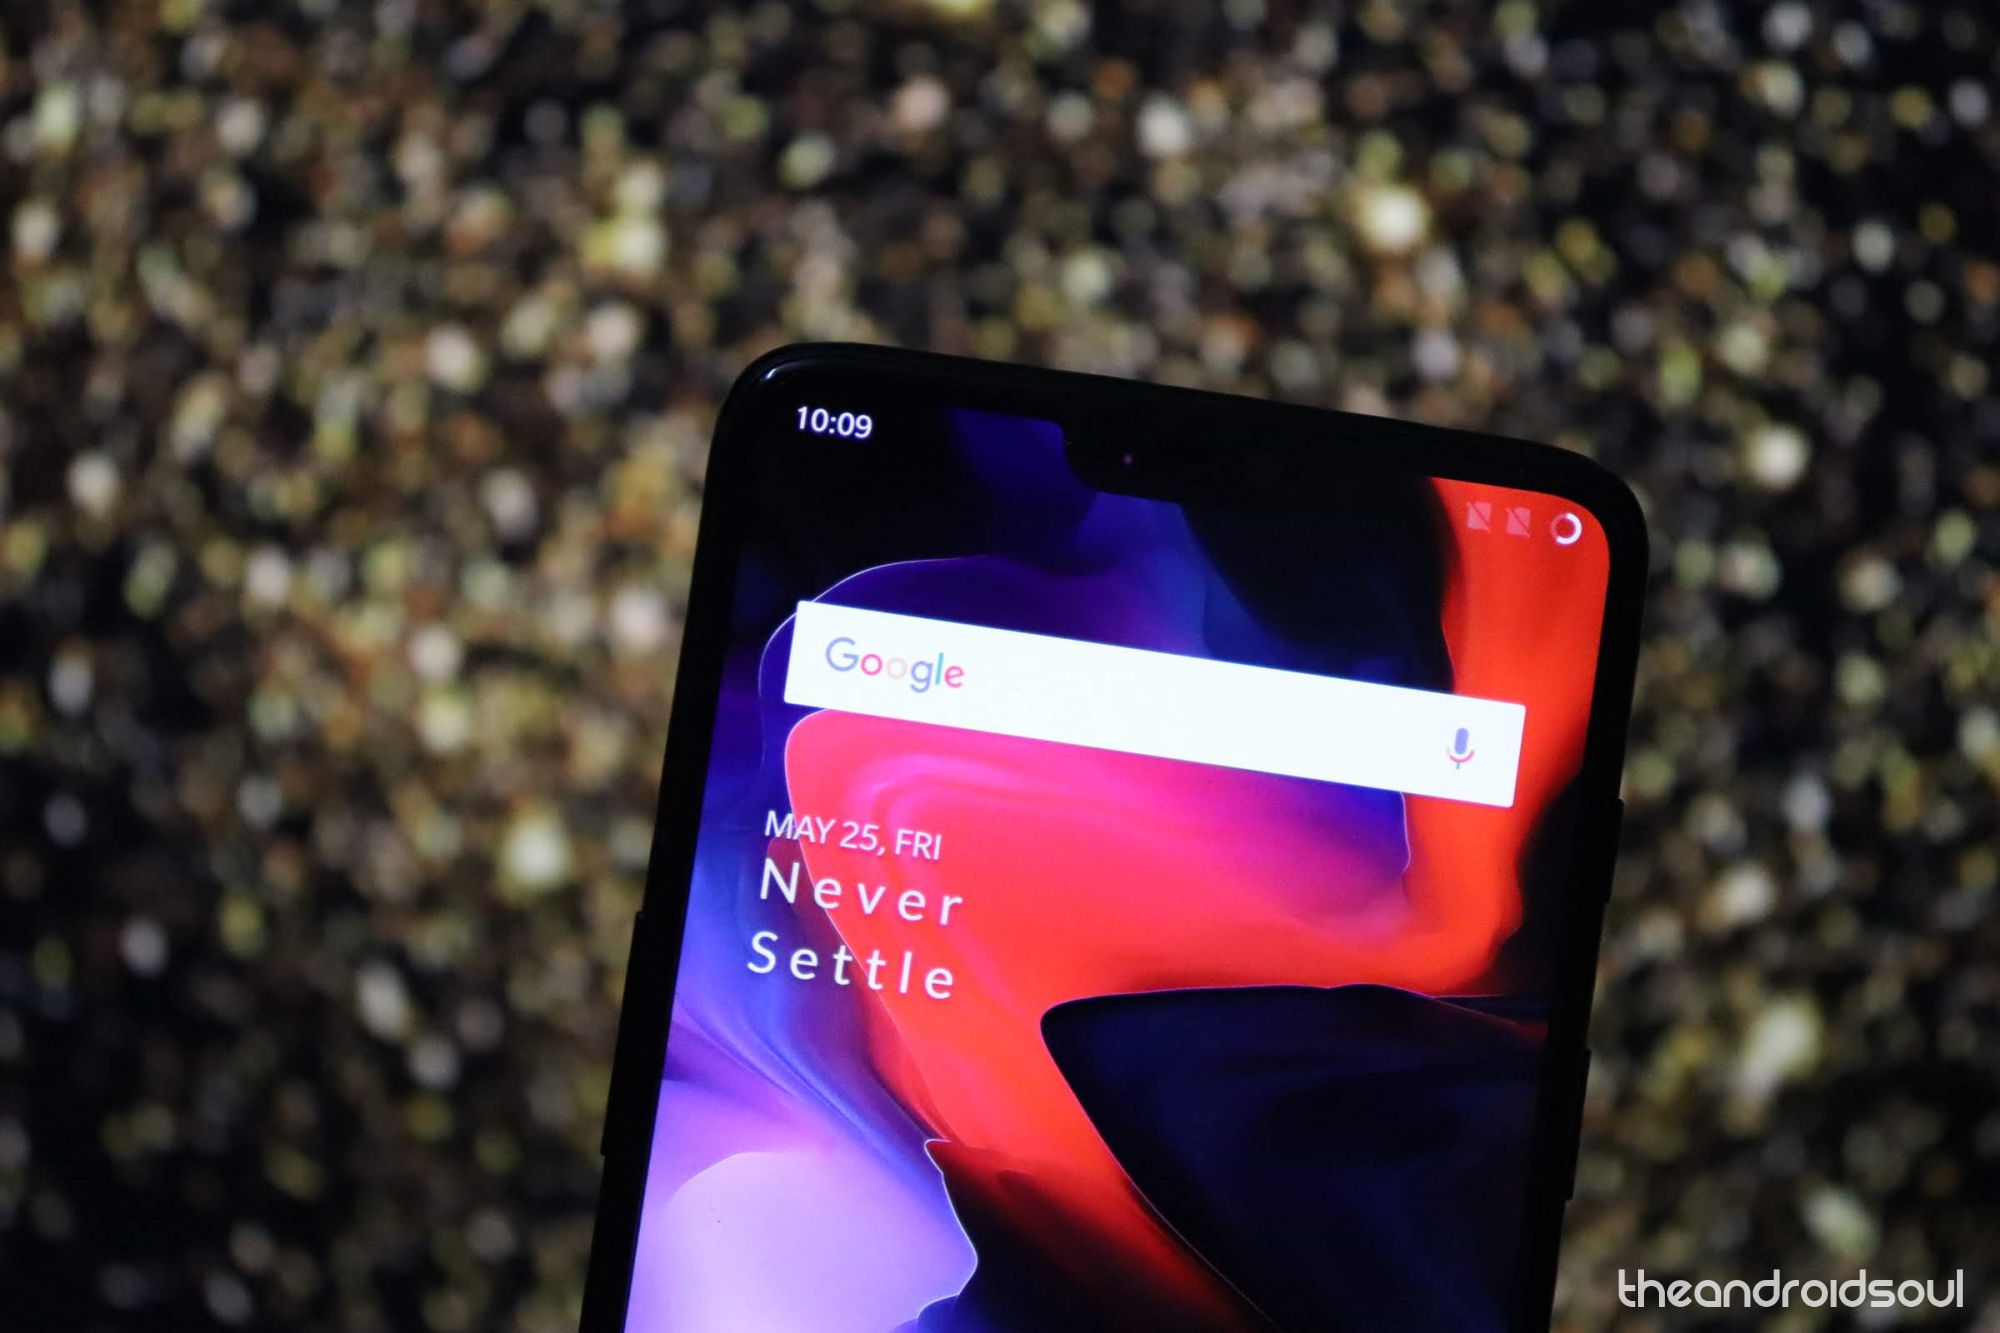 Official TWRP recovery for OnePlus 6 now available